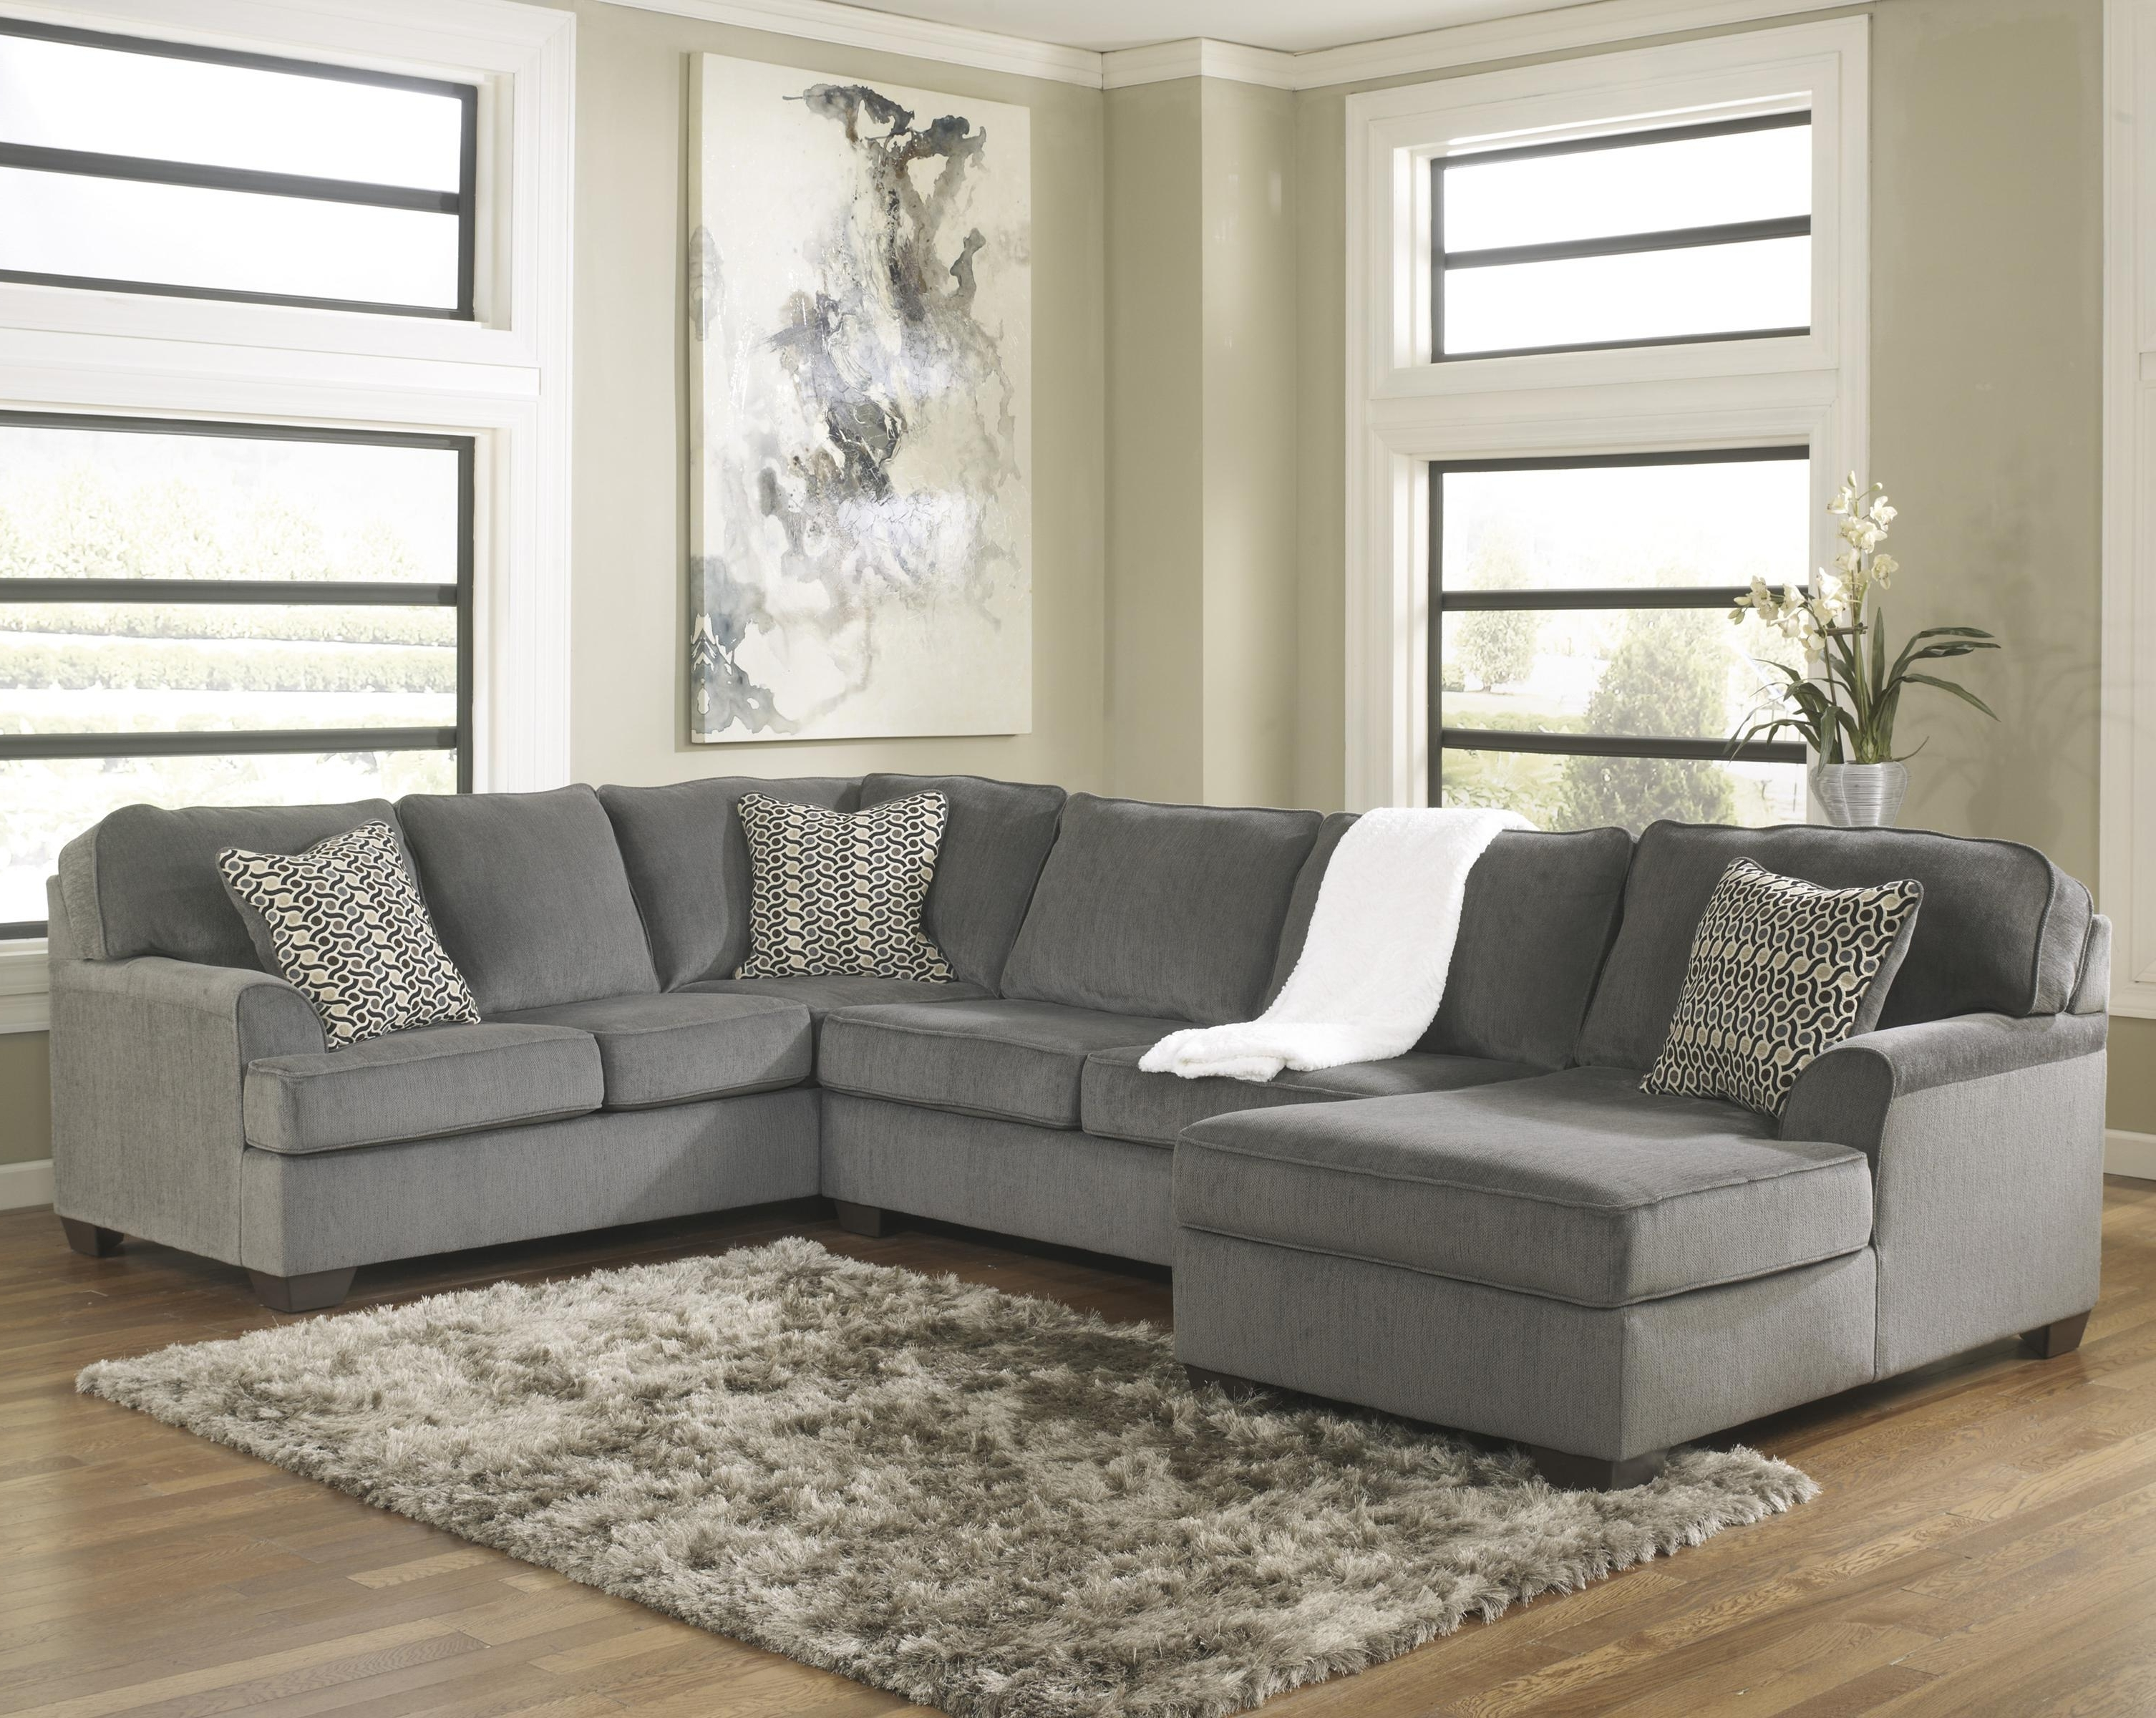 Ashley Furniture Chaise Sofas Pertaining To Famous Ashley Furniture Loric – Smoke Contemporary 3 Piece Sectional With (View 14 of 15)